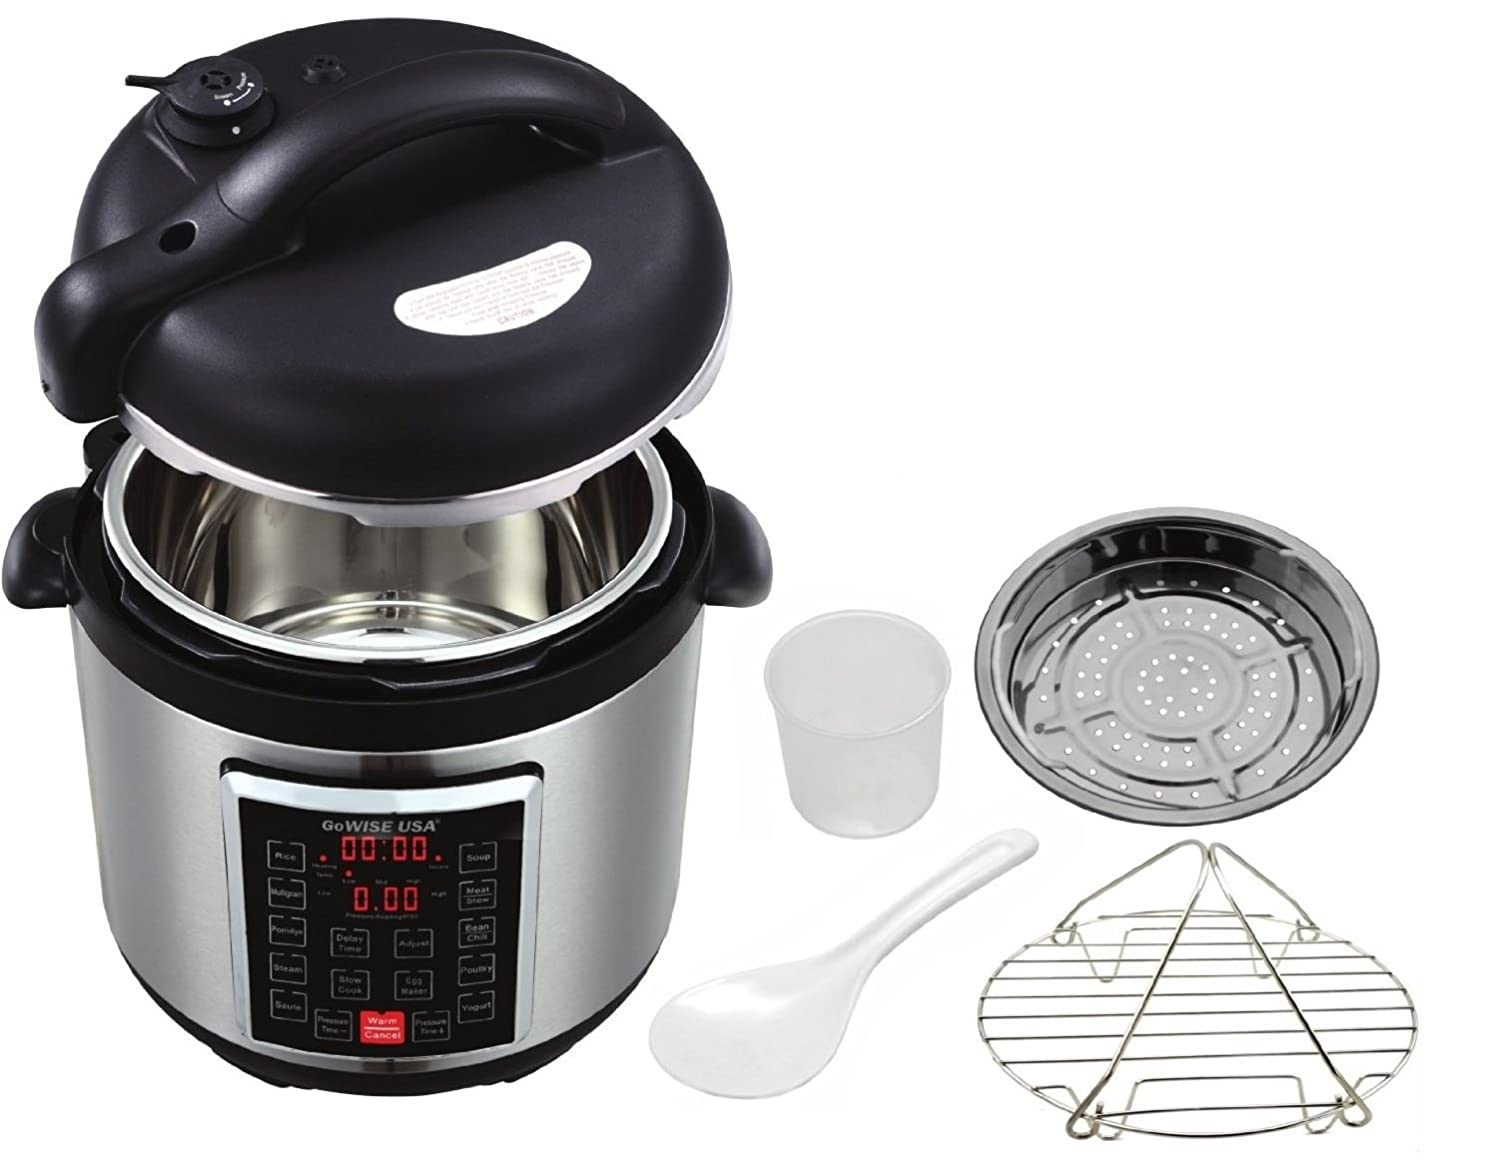 GoWISE USA GW22623 4th-Generation Electric Pressure Cooker with Steam Rack, Basket, and Rice Scooper